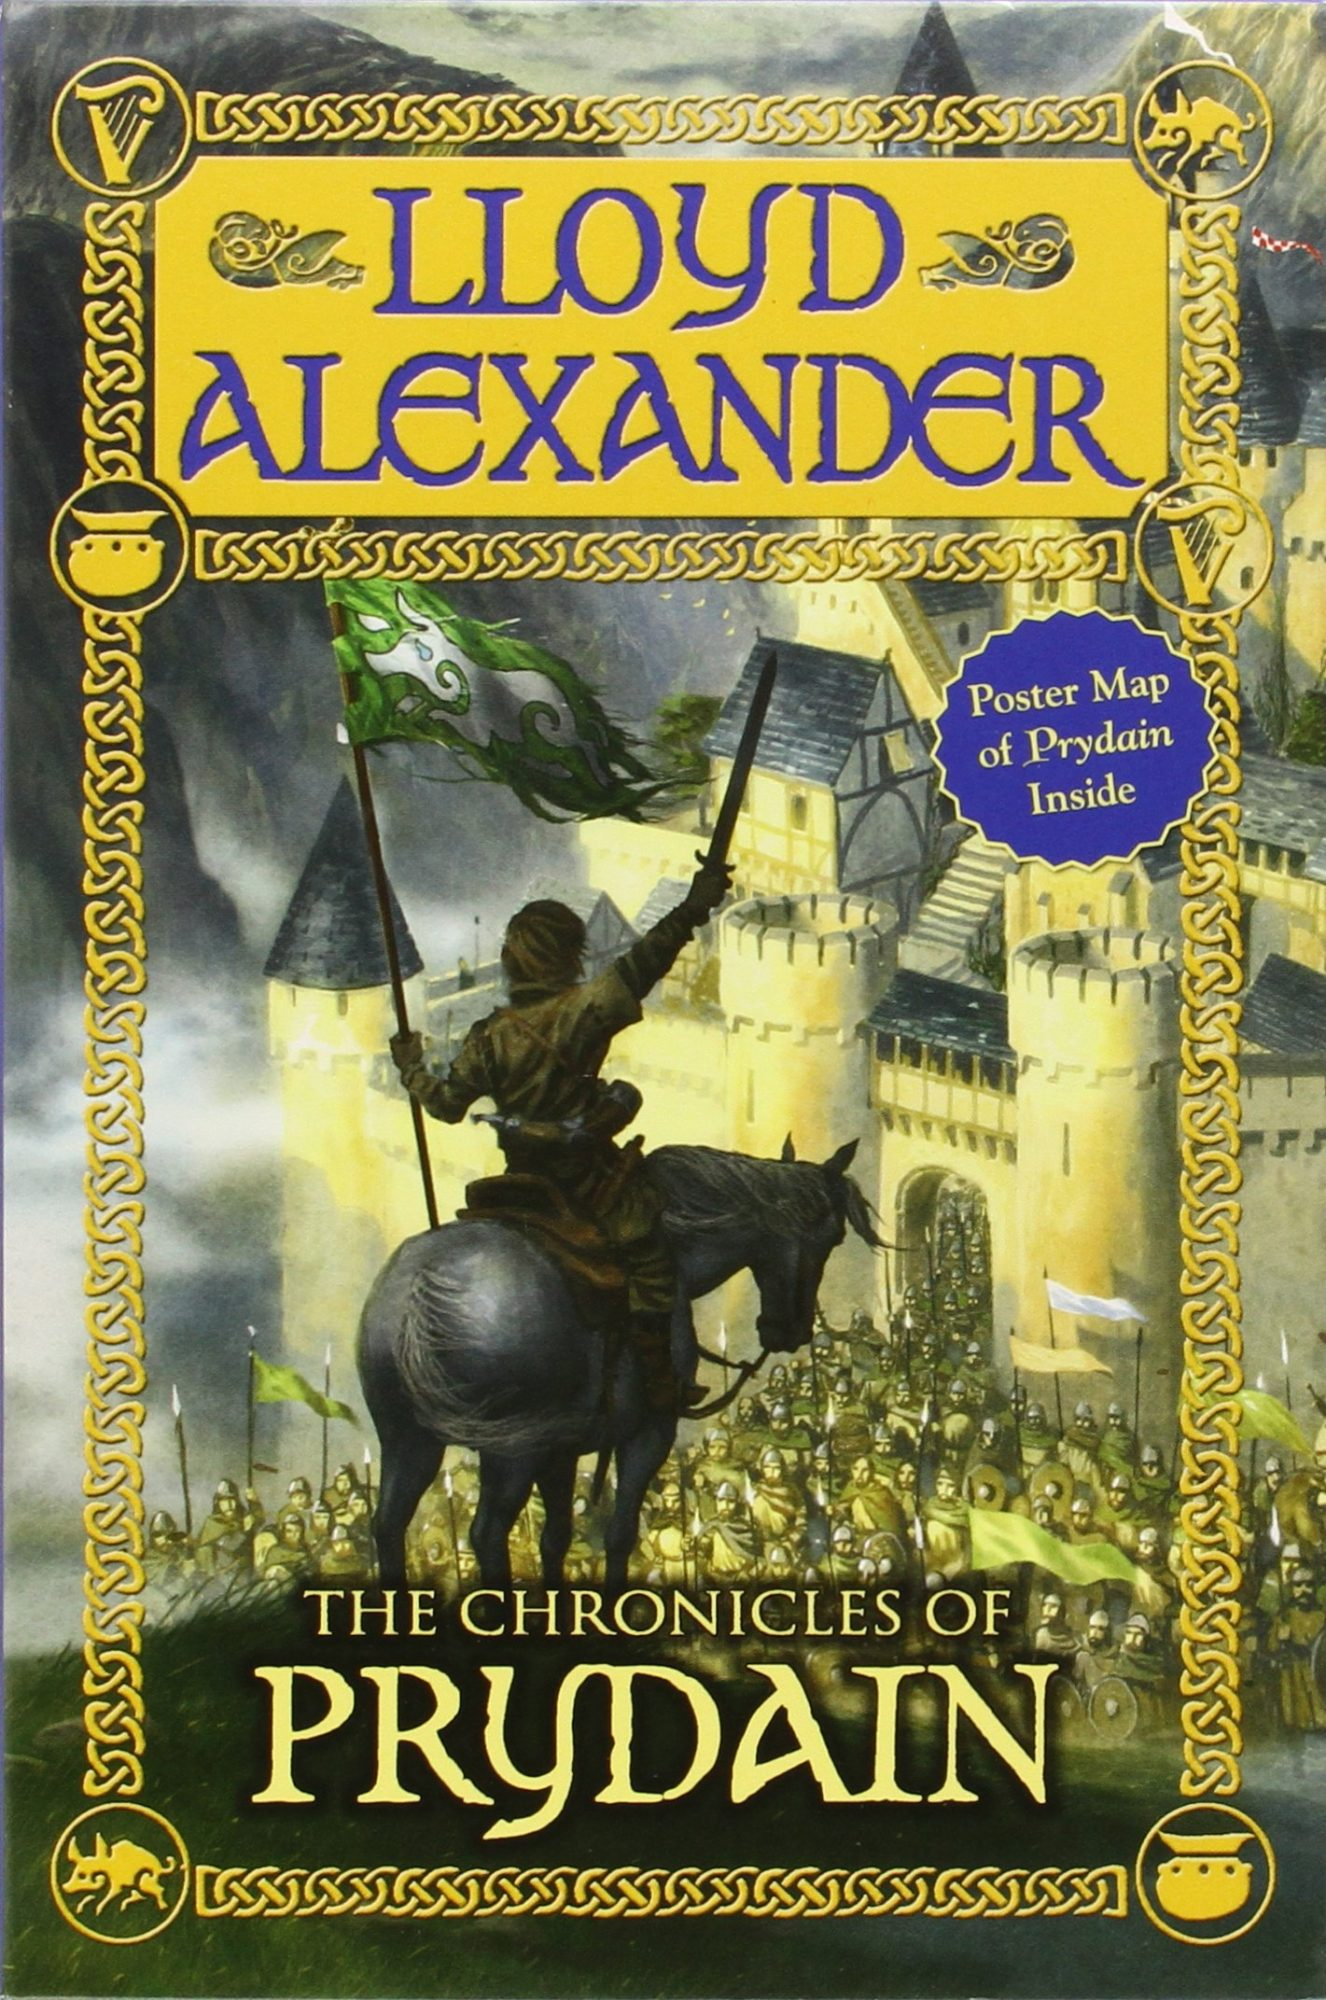 The Chronicles of Prydain by Lloyd Alexander